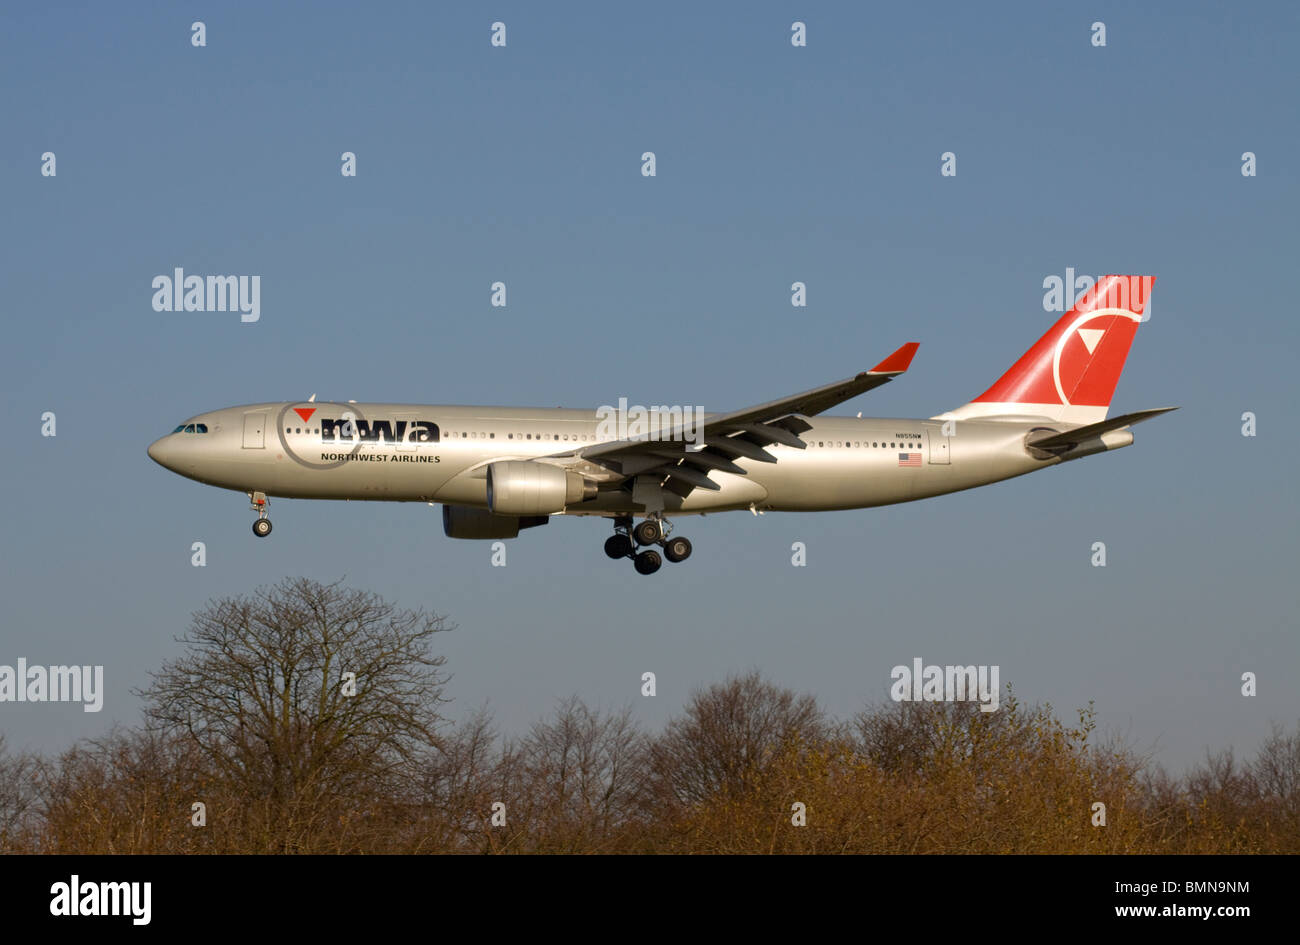 NWA Northwest Airlines Airbus A330-223 landing at London Heathrow - Stock Image